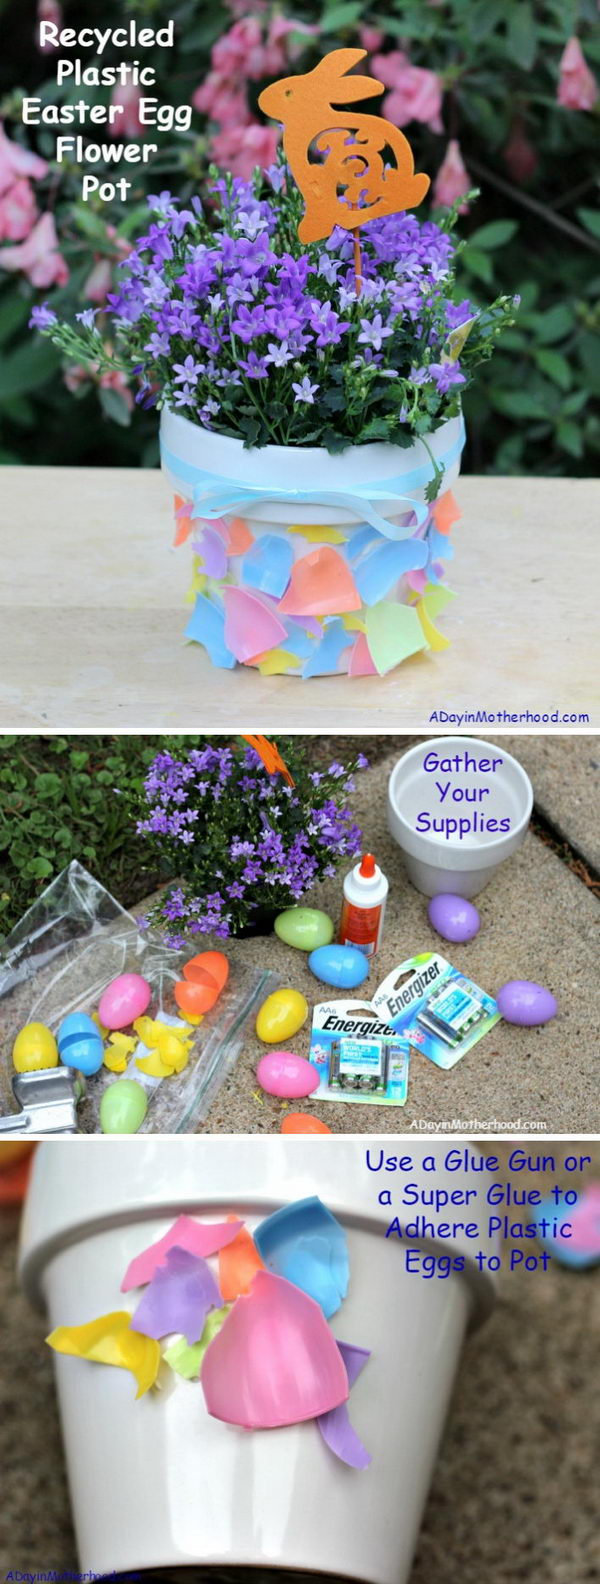 Recycled Plastic Easter Egg Flower Pot.